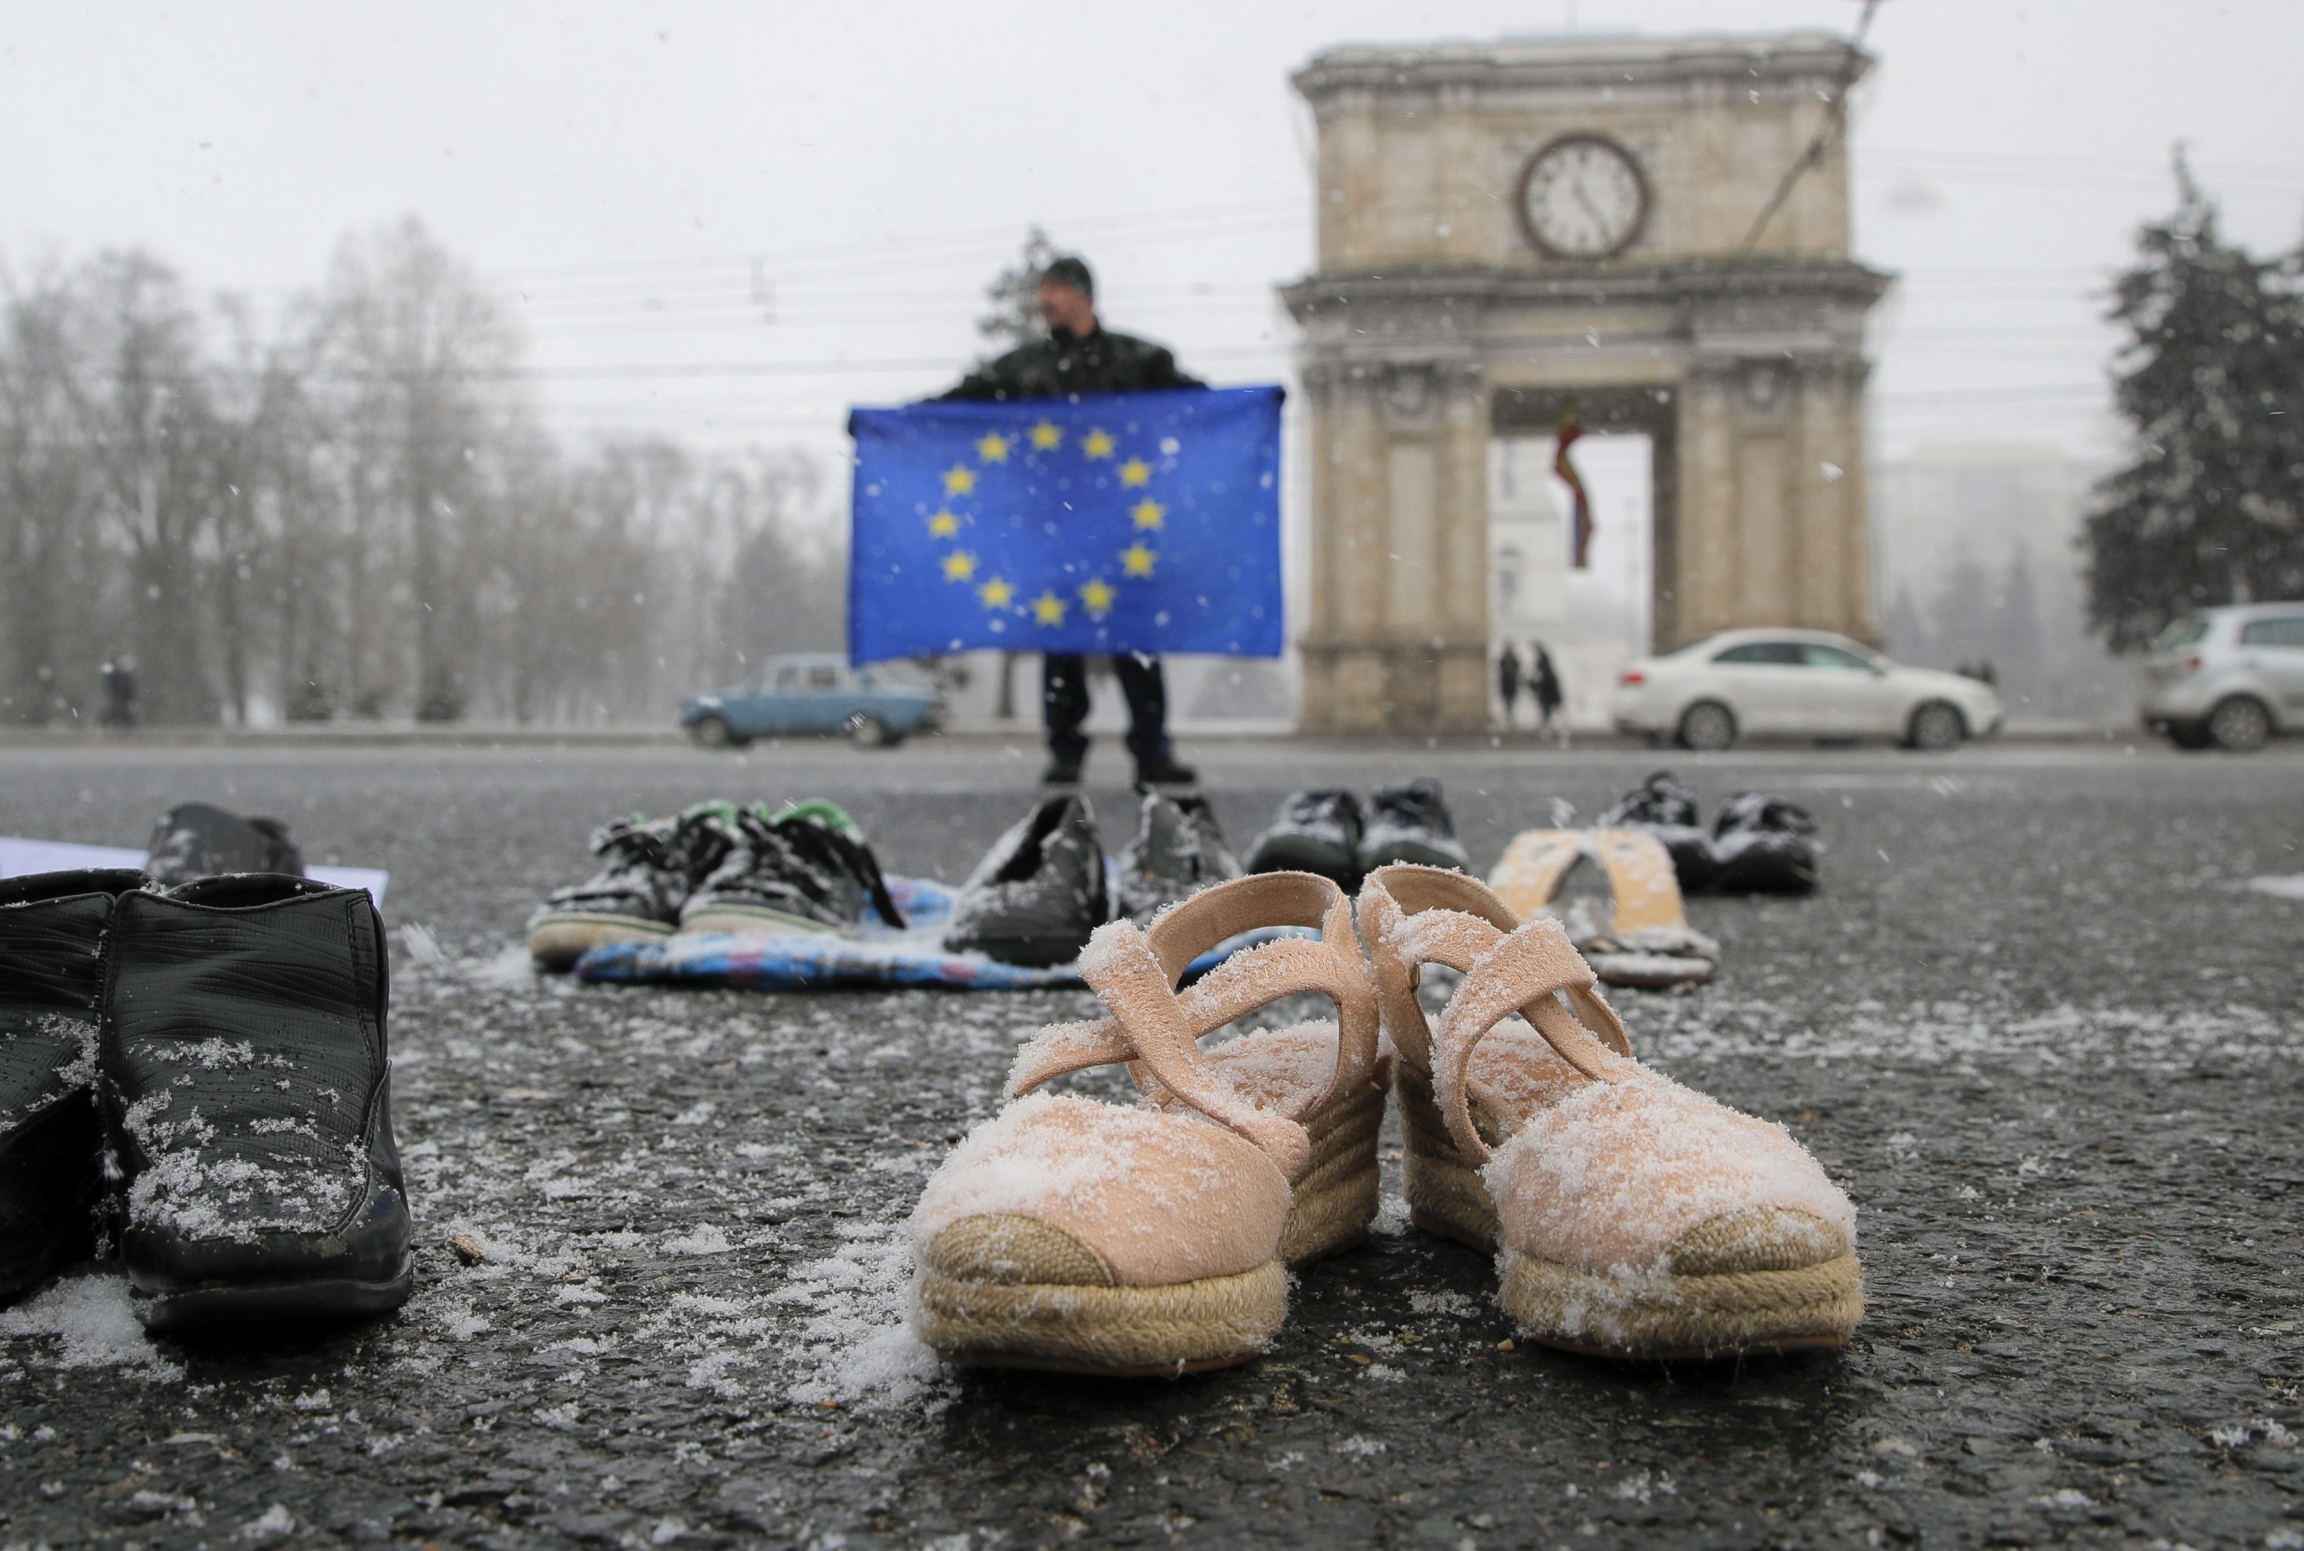 A few pairs of shoes with snow on them lie in a square near a man with an EU flag with blue and yellow colors.